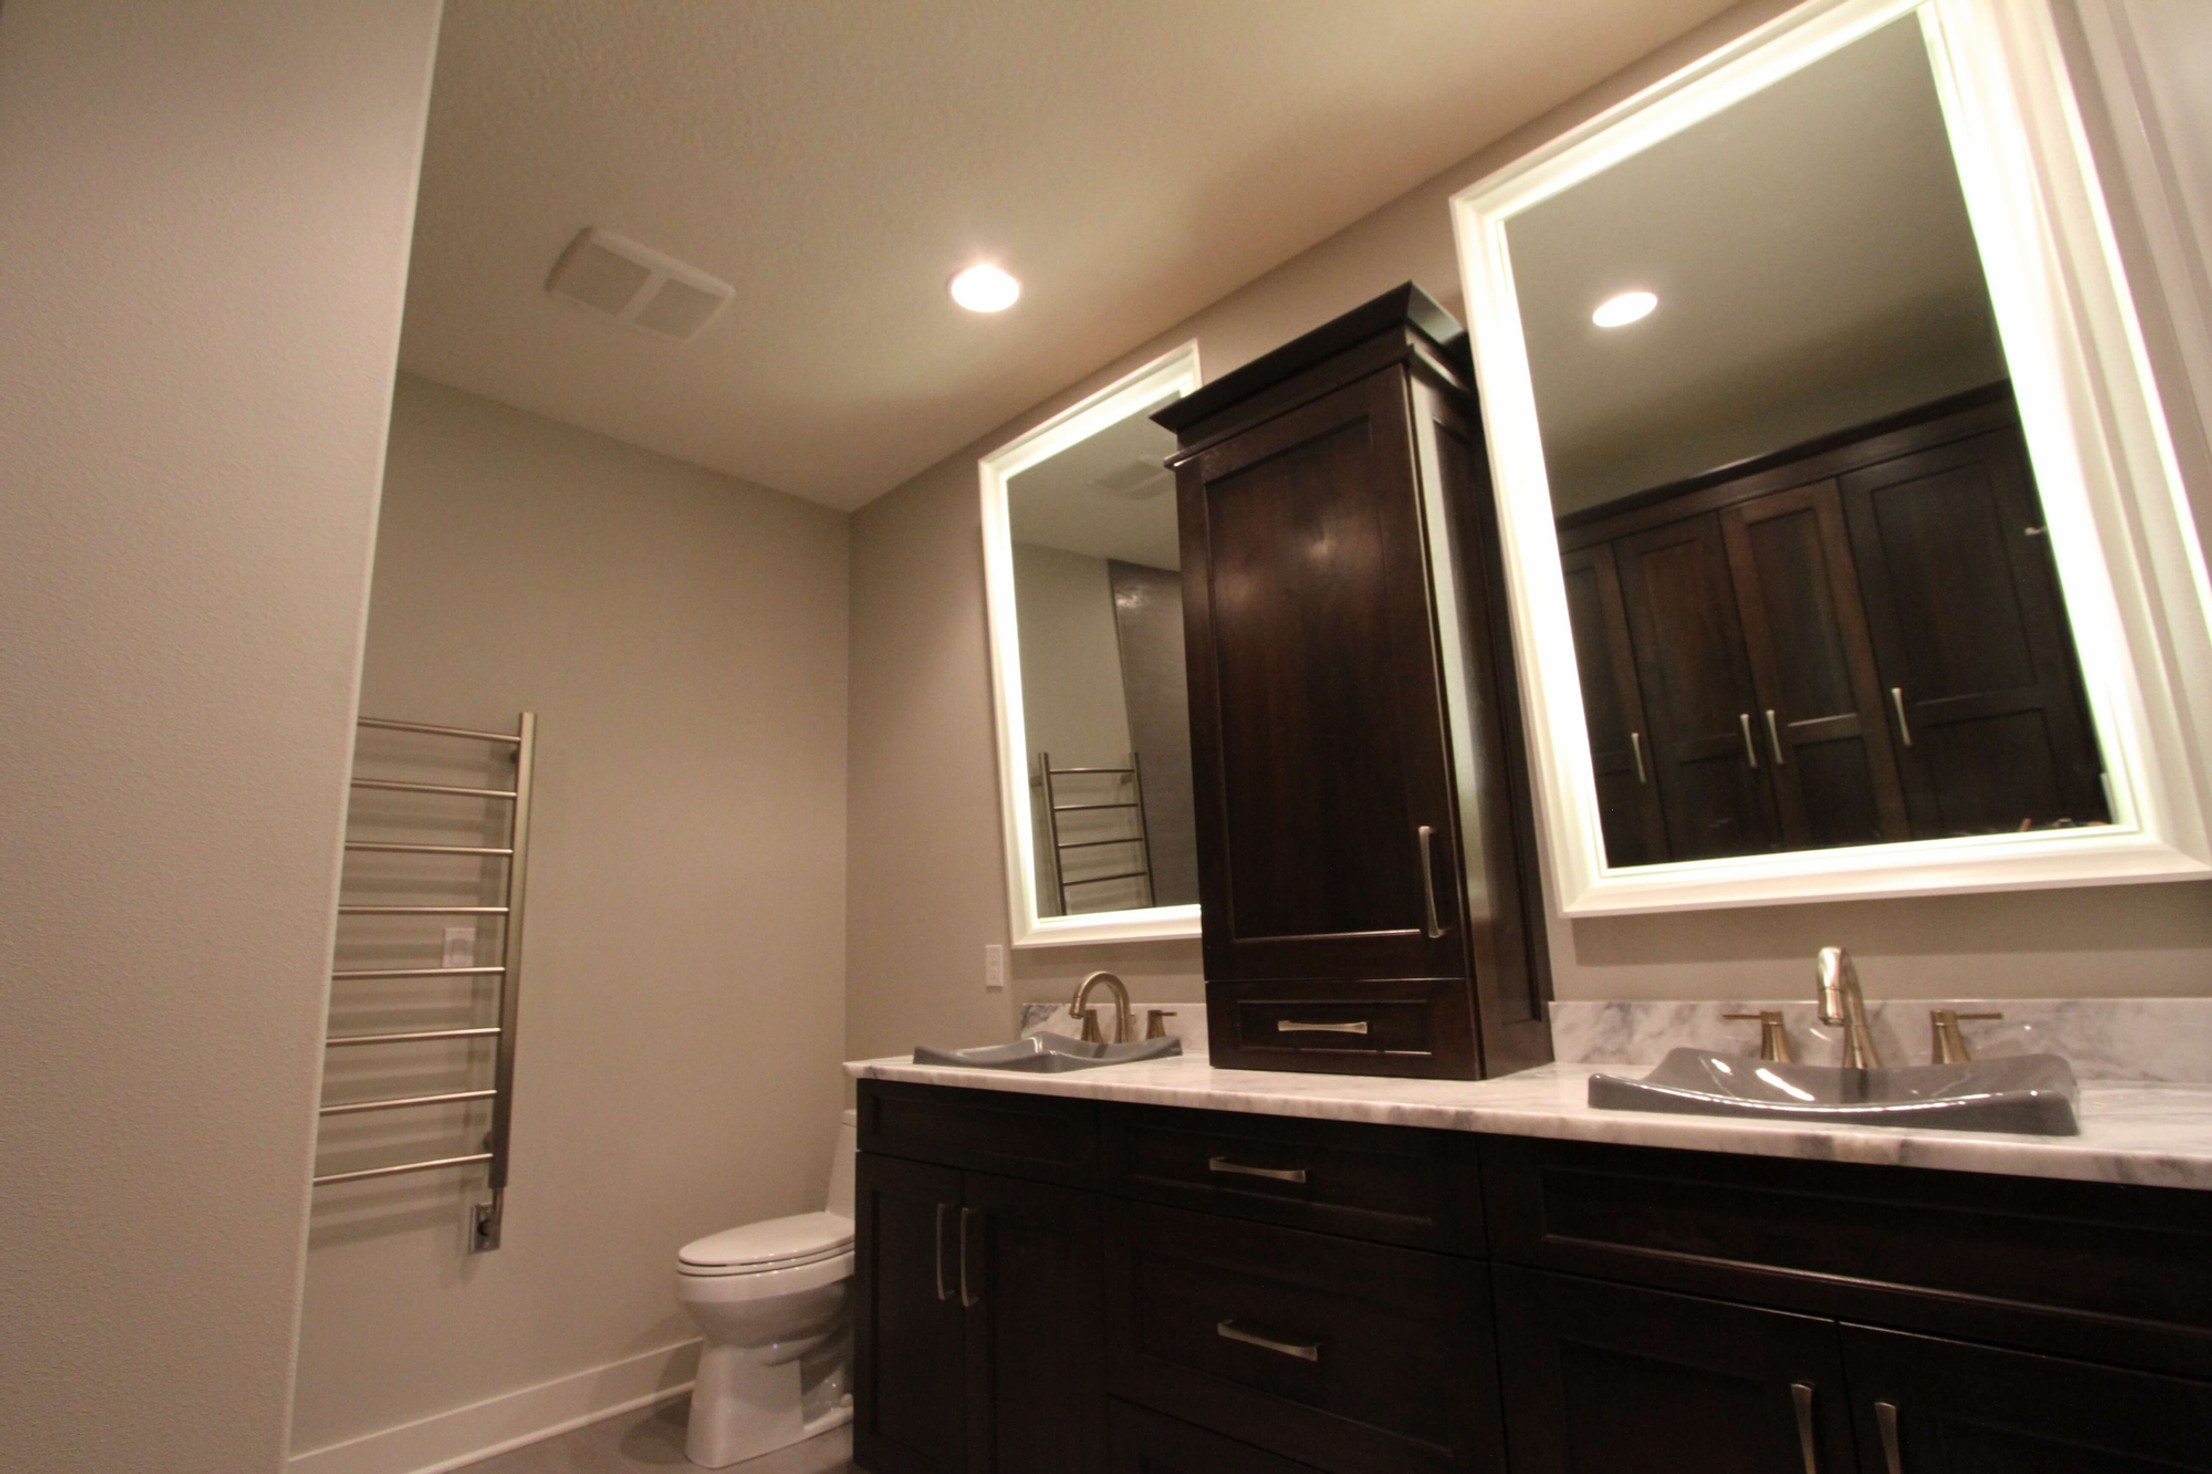 Great remodeling project